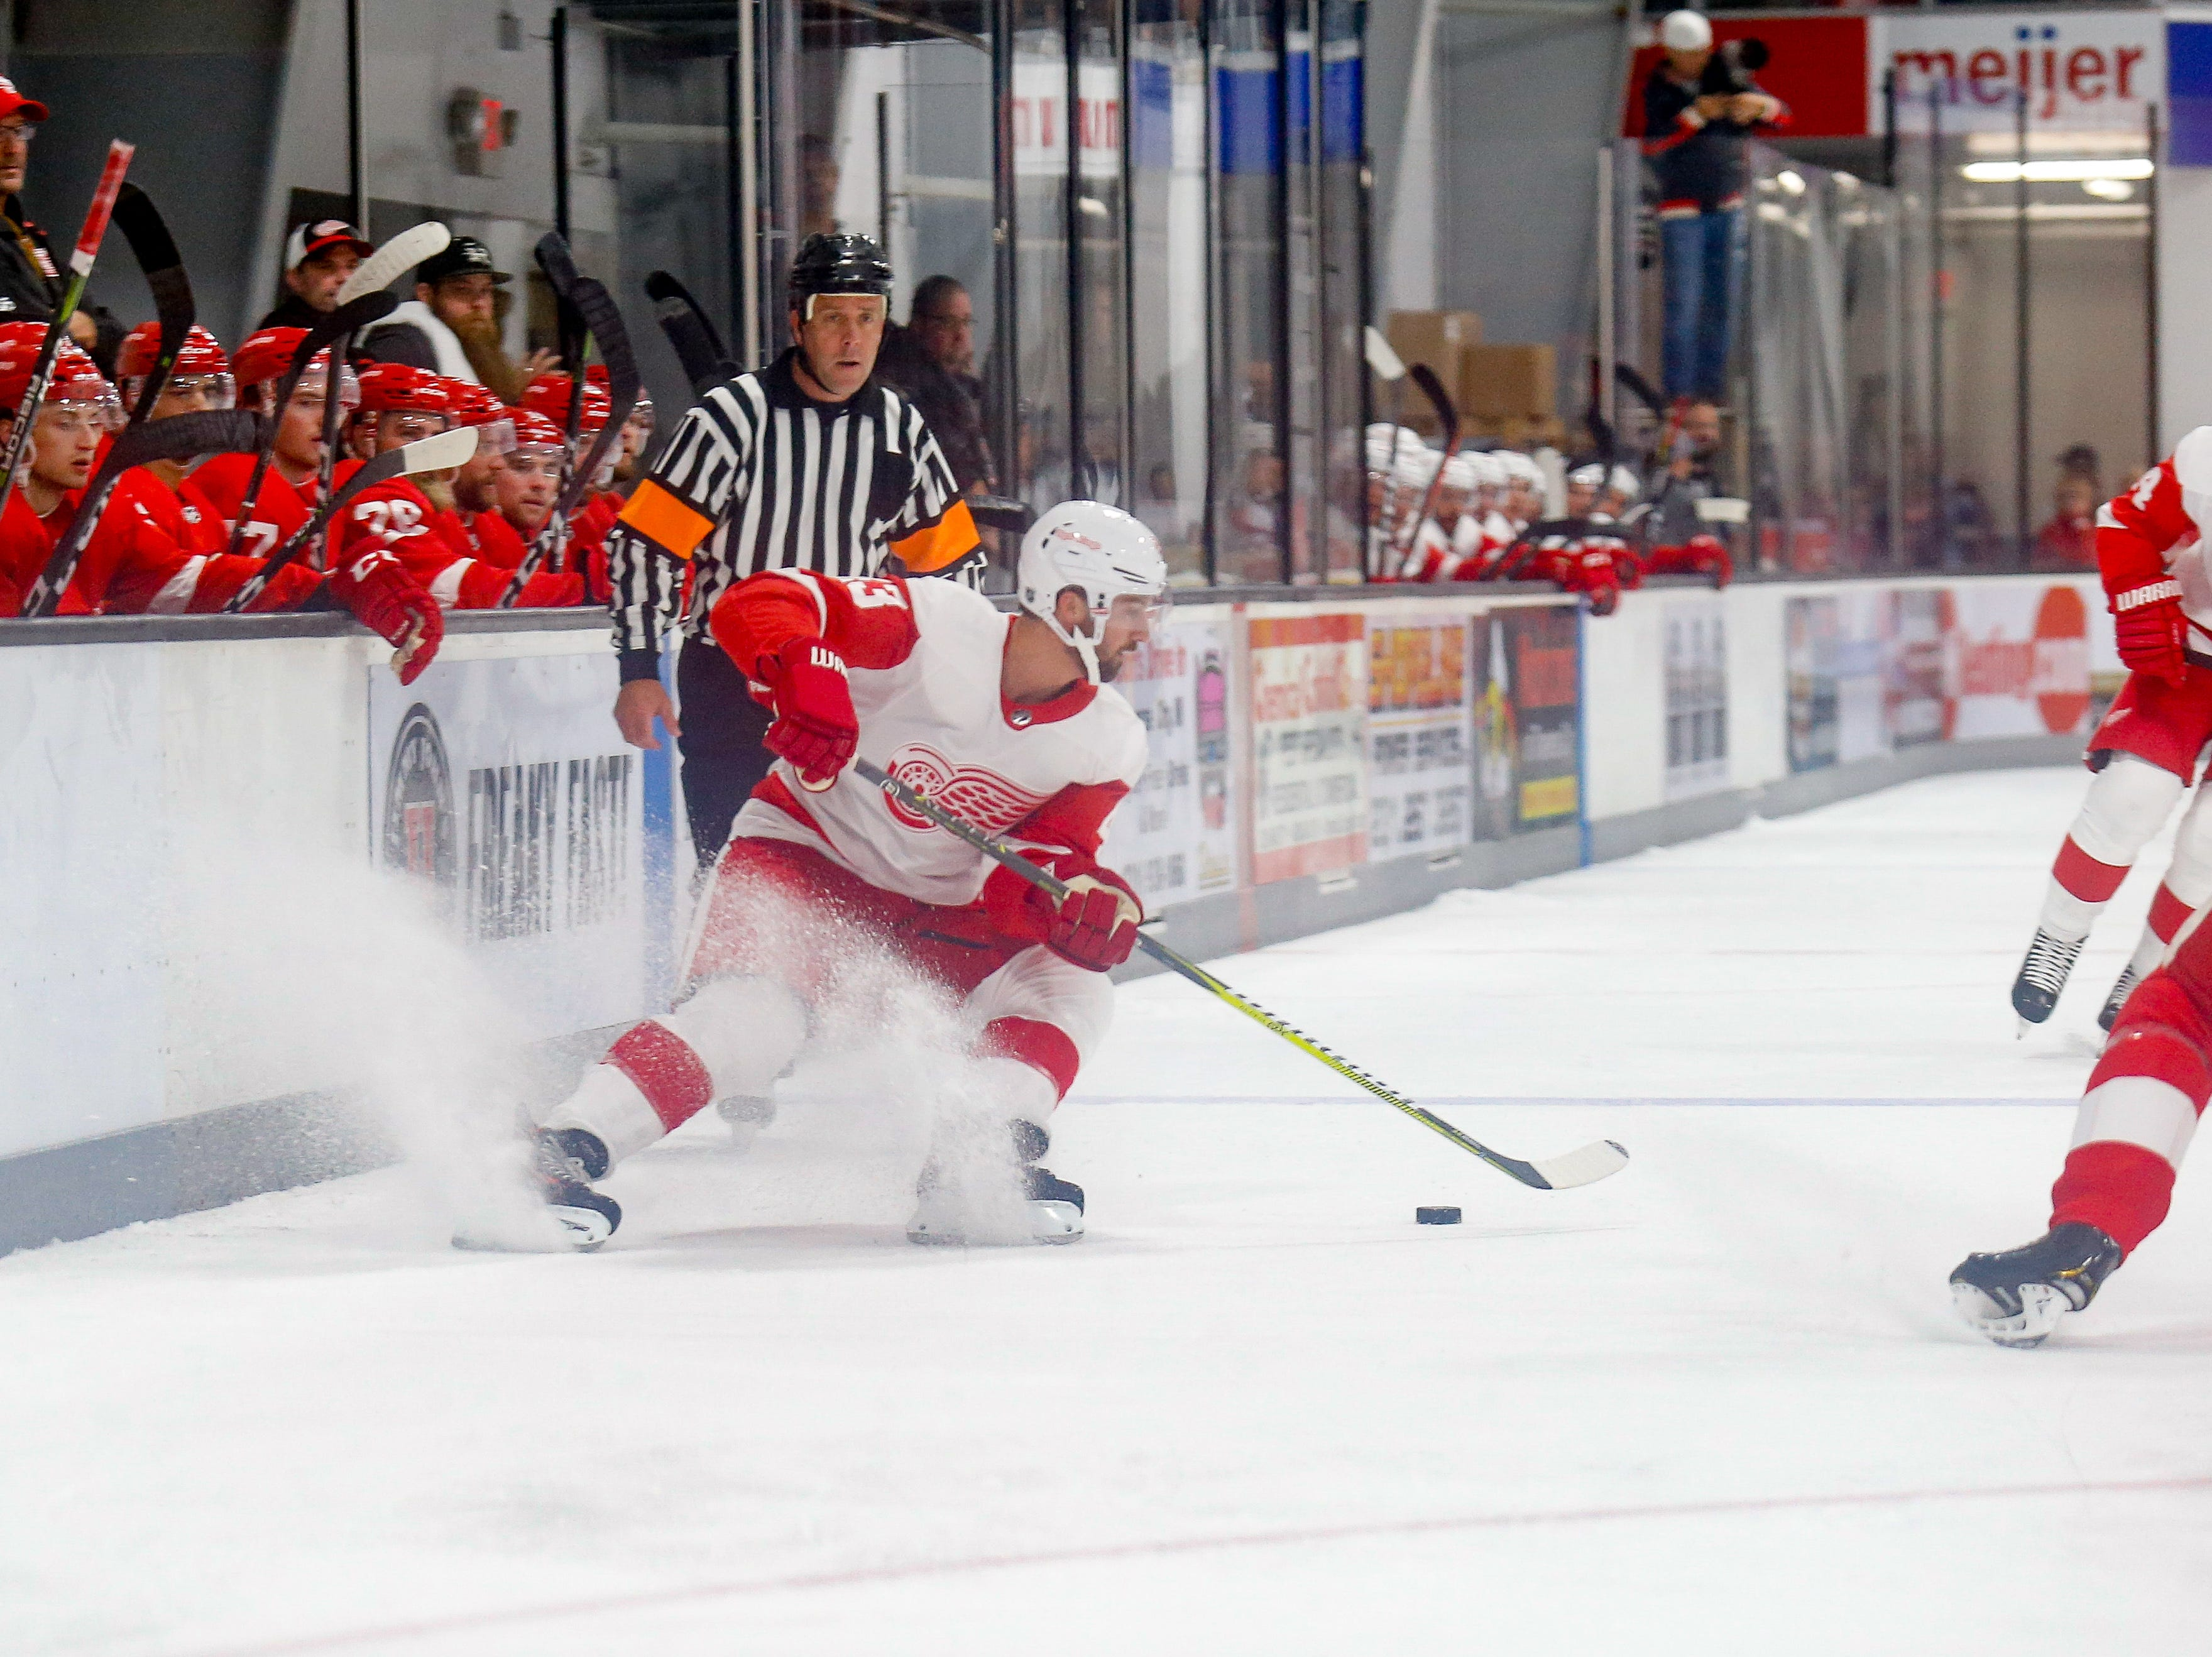 Darren Helm (43) stops and turns with the puck as Dennis Cholowski (21) defends against his advances.